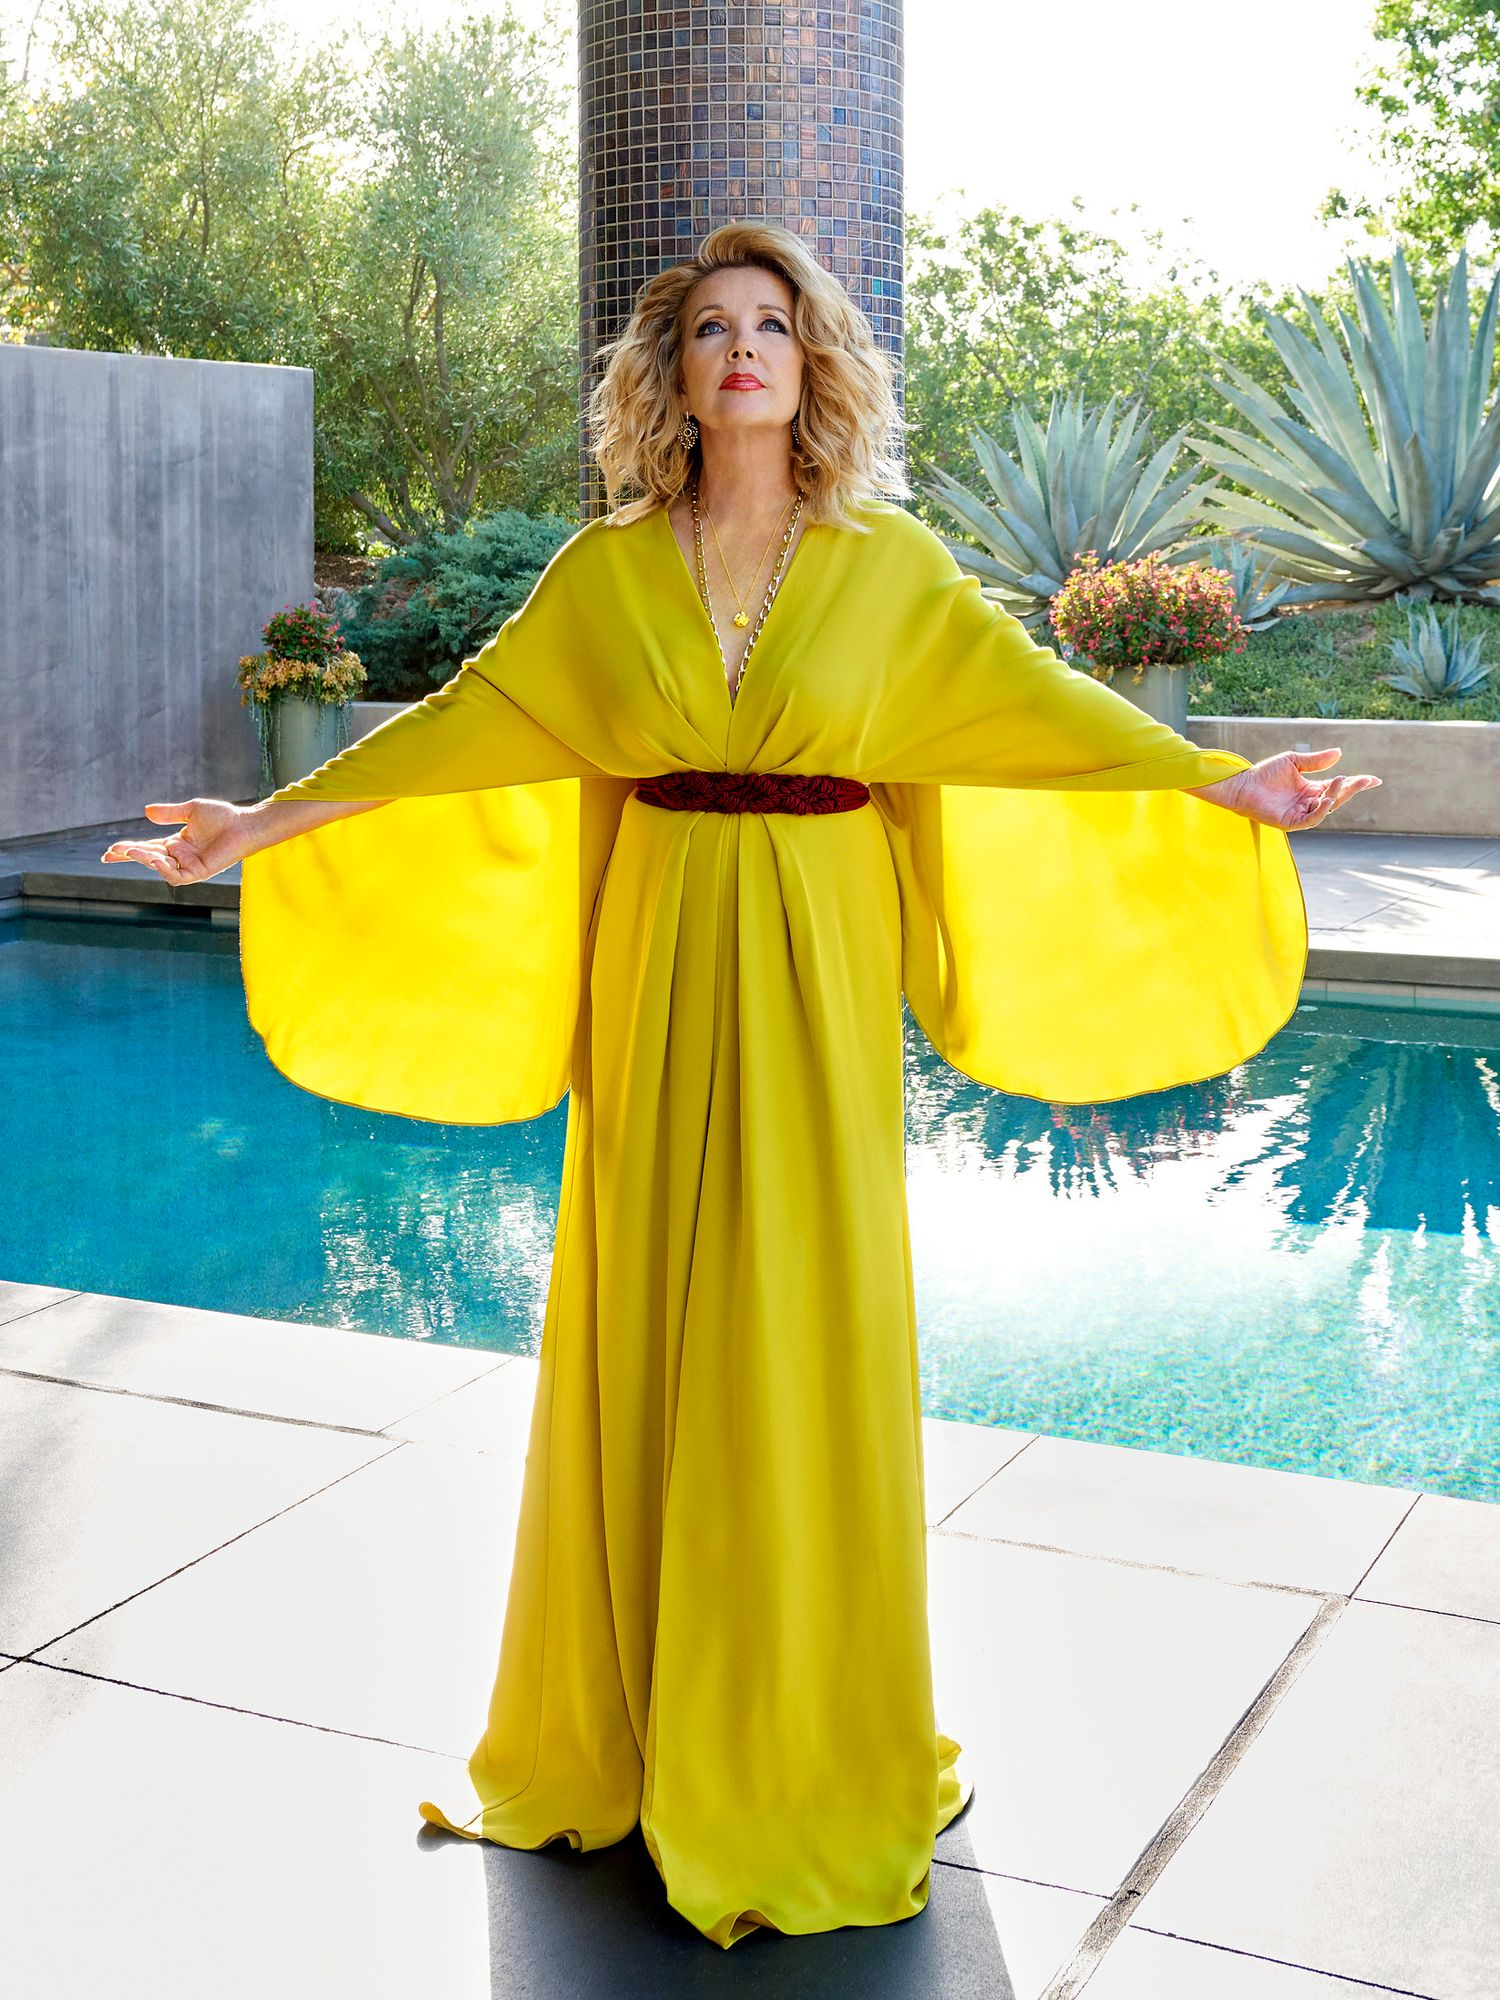 Melody Scott Thomas wears a vibrant yellow dress with massive sleeves stands in front of a pool and tiled pillar